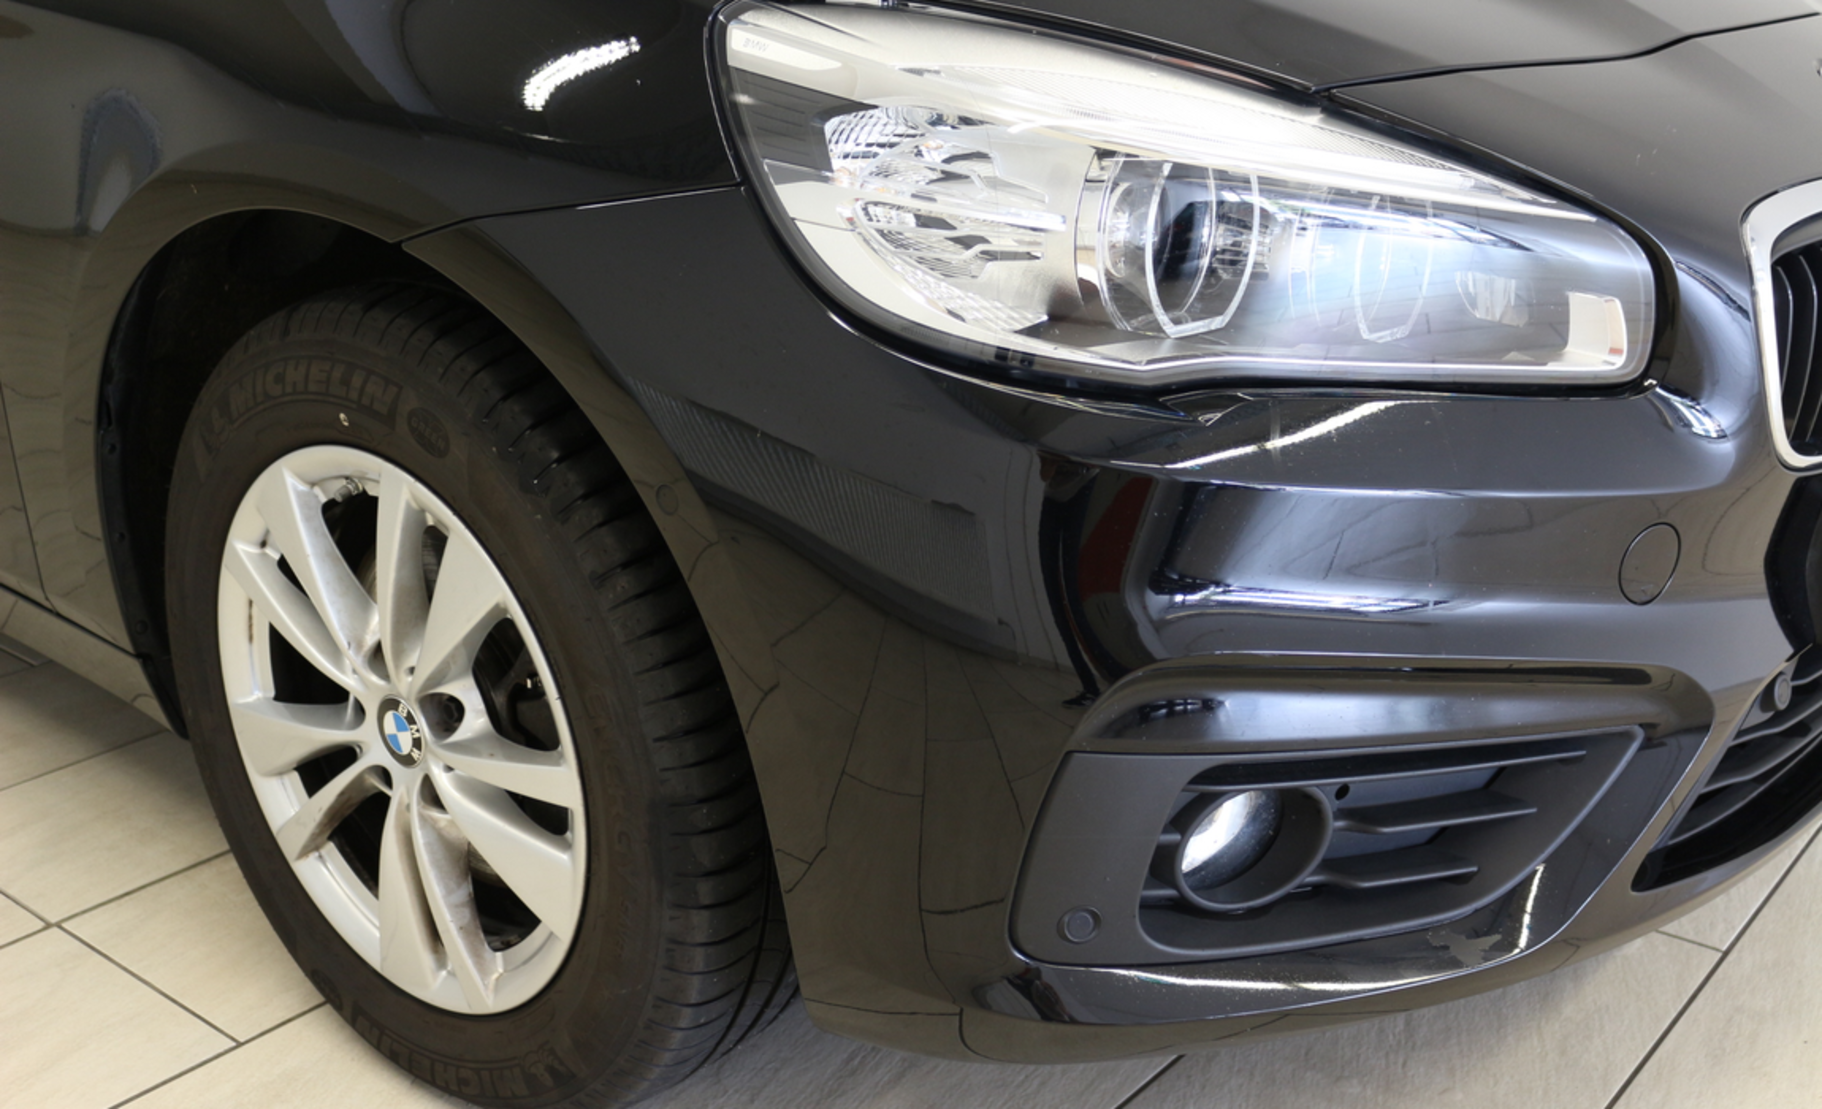 BMW 2 218d Active Tourer, Advantage (605377) detail2